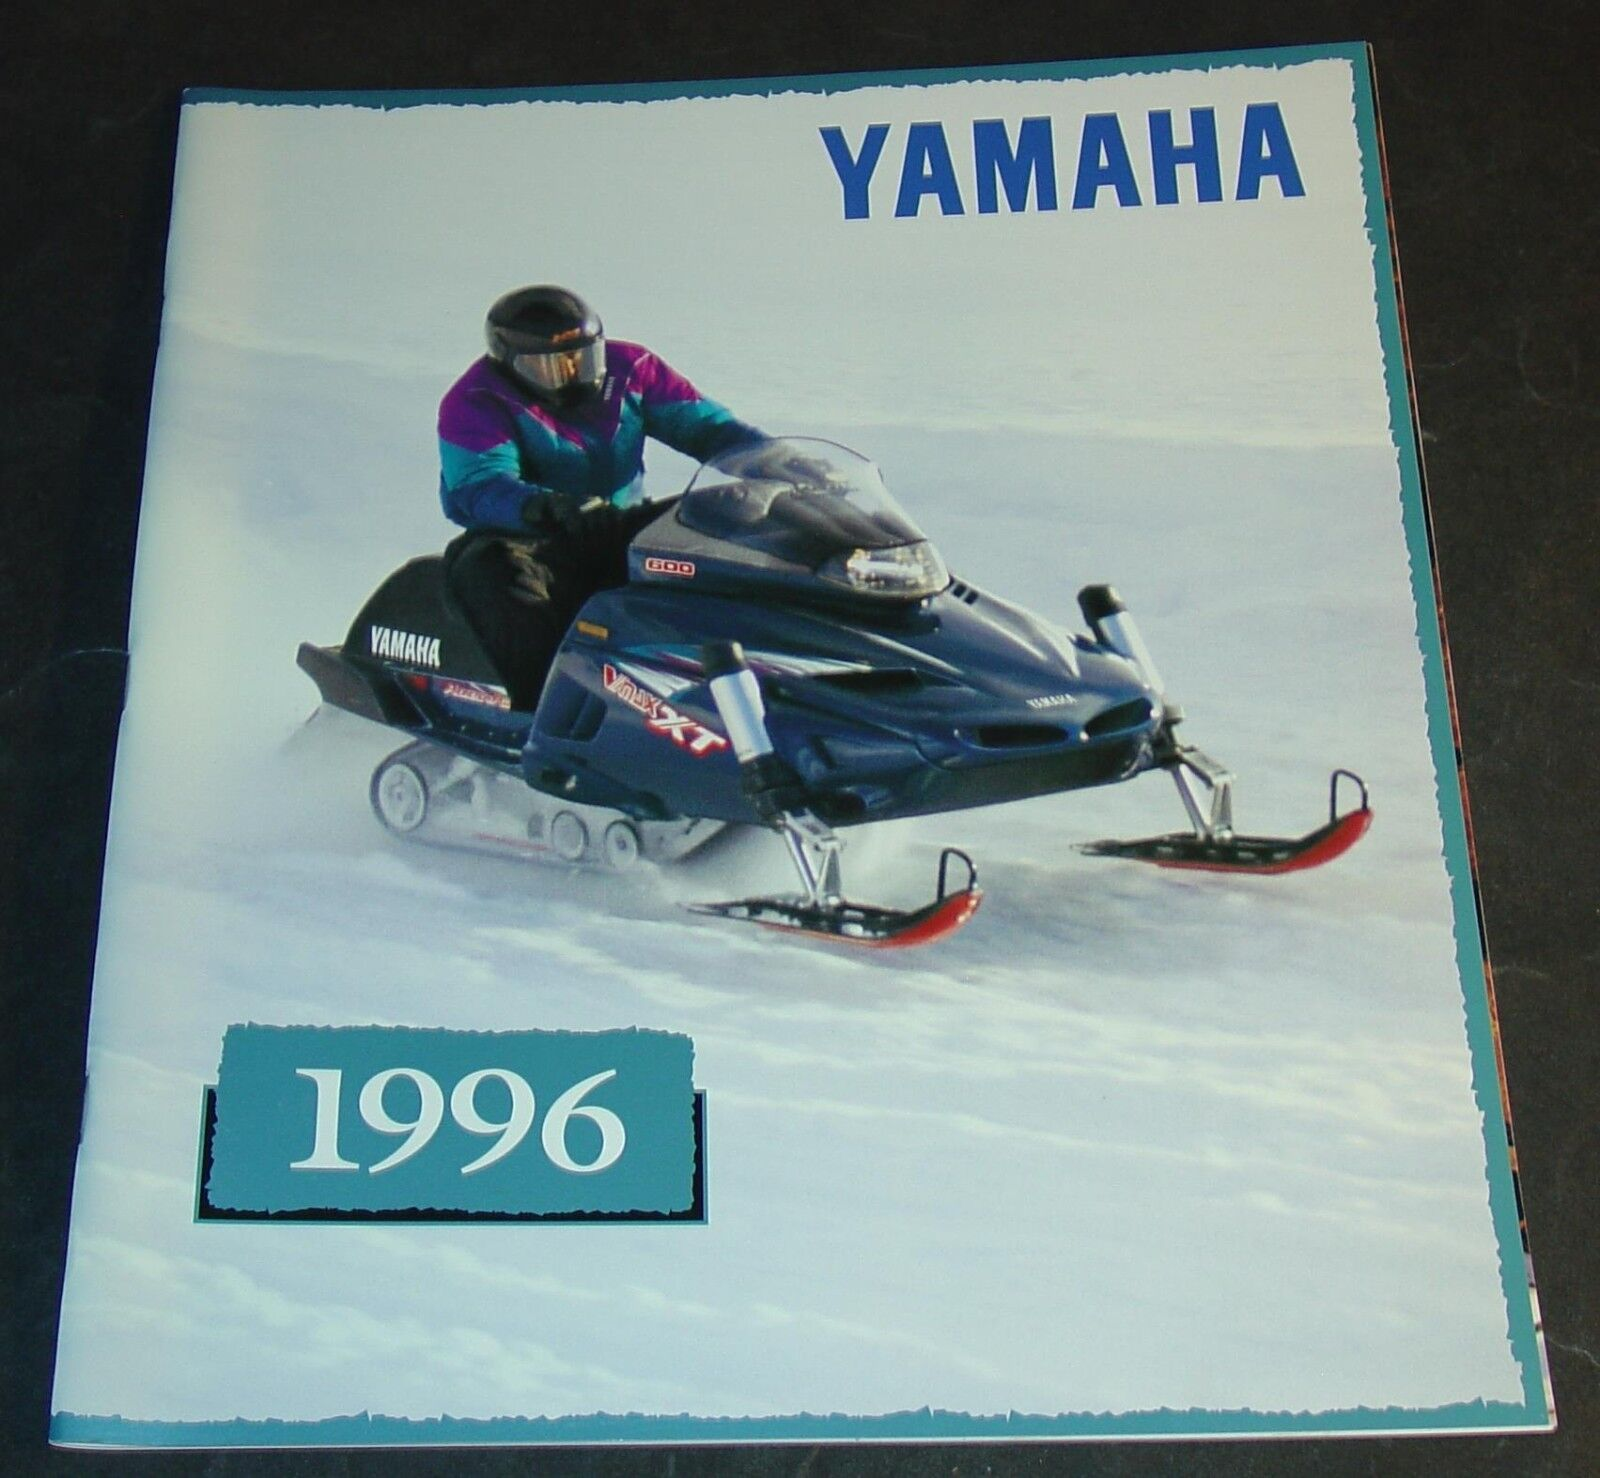 1996 YAMAHA  SNOWMOBILE LARGE SALES BROCHURE 36 PAGES NICE     (410)  affordable